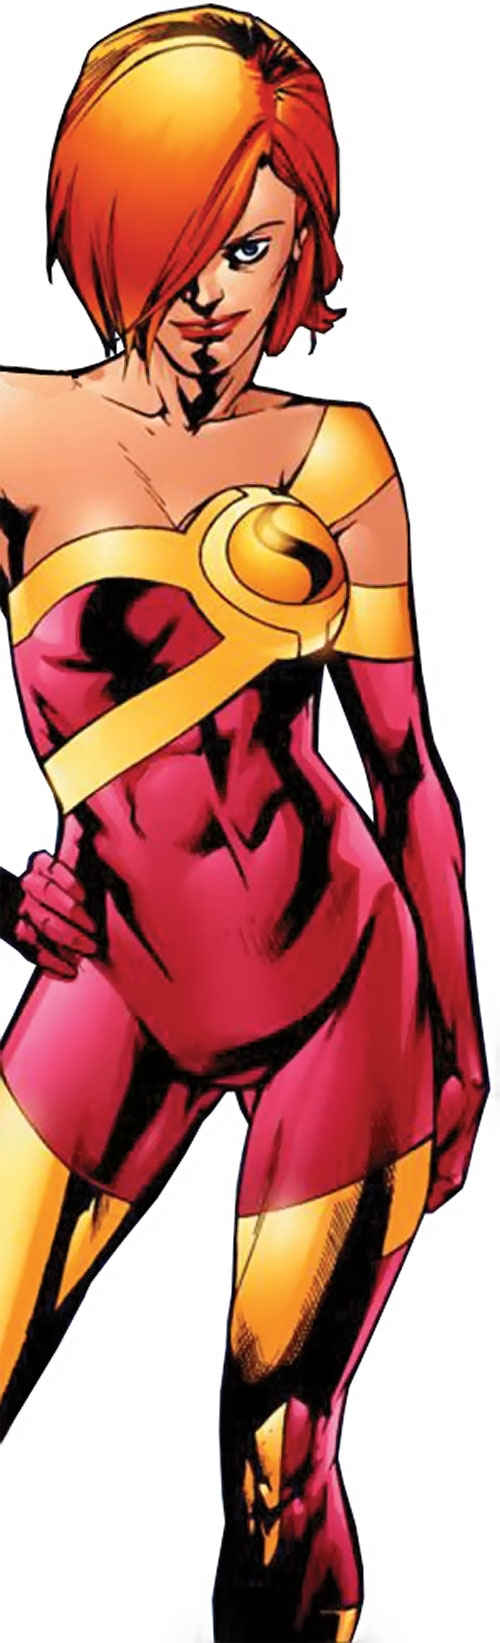 Synergy (Dynamo 5 enemy) (Image Comics) in a light red costume